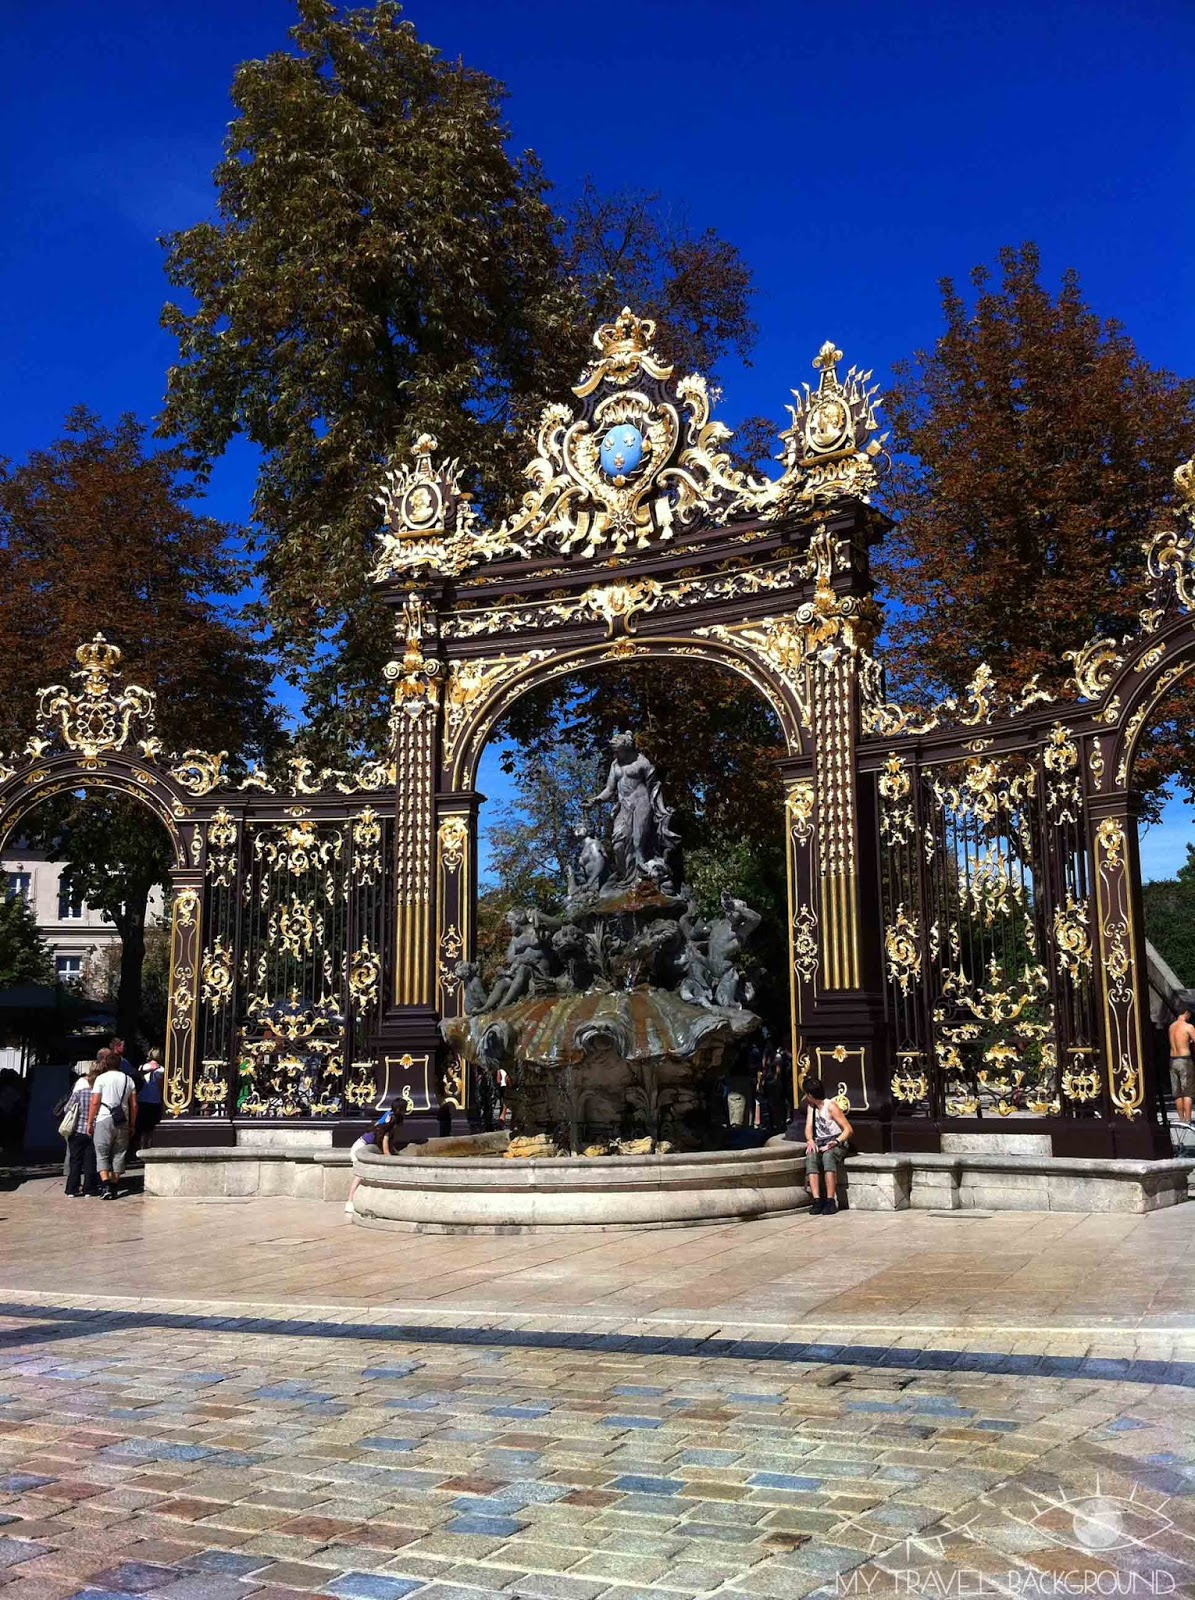 My Travel Background : Visiter Nancy en 1 jour  - Place Stanislas